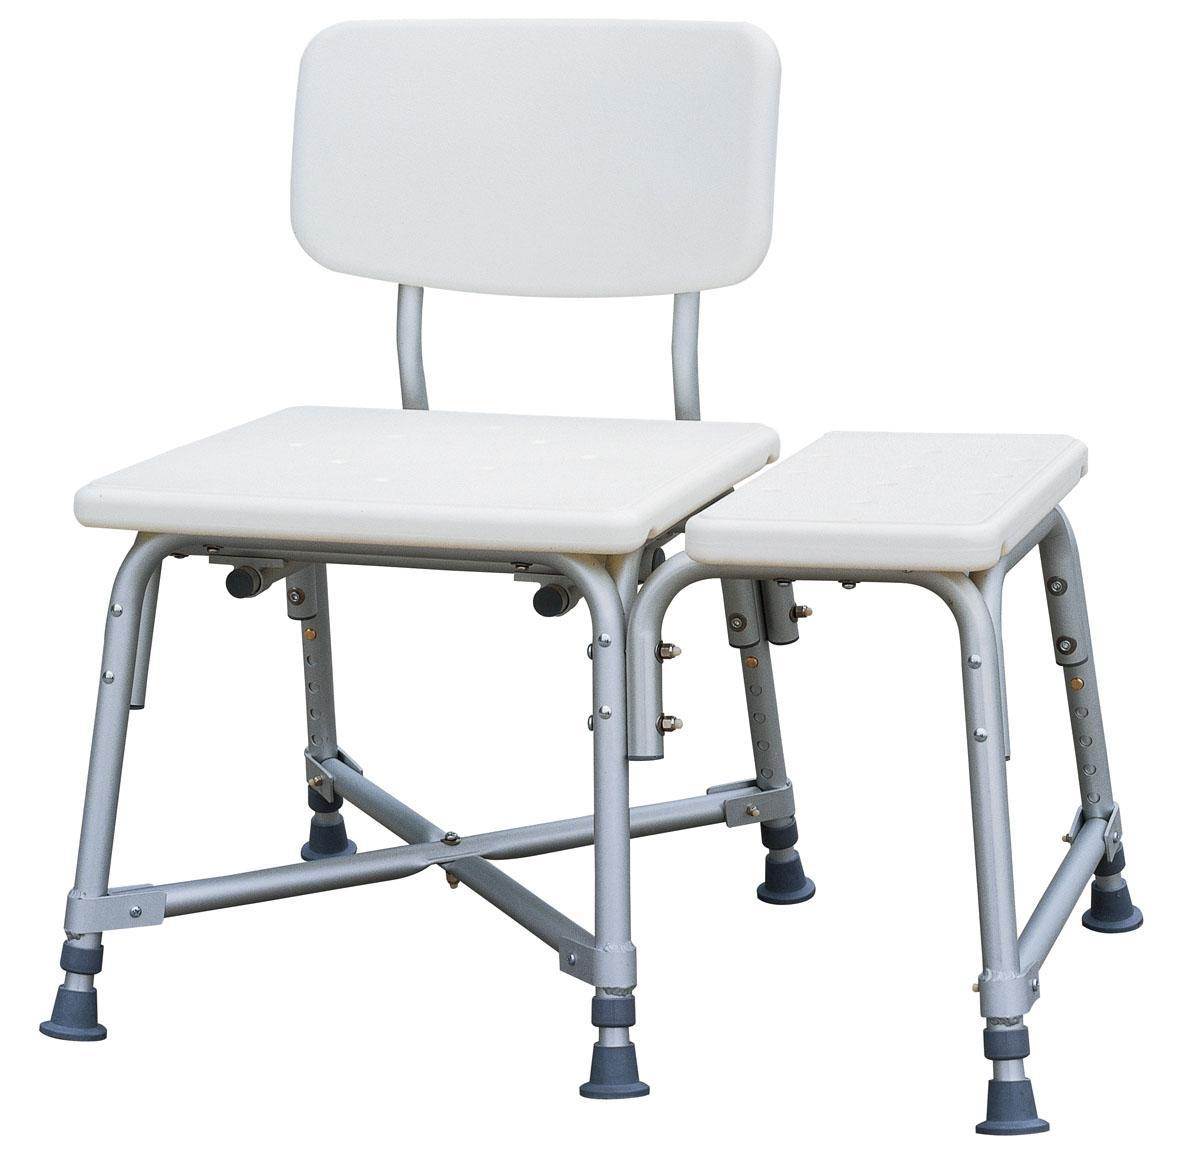 Pleasing Medline Bariatric Heavy Duty Medical Transfer Bench With Adjustable Height And 6 Heavy Duty Supporting Legs For Extra Stability Machost Co Dining Chair Design Ideas Machostcouk